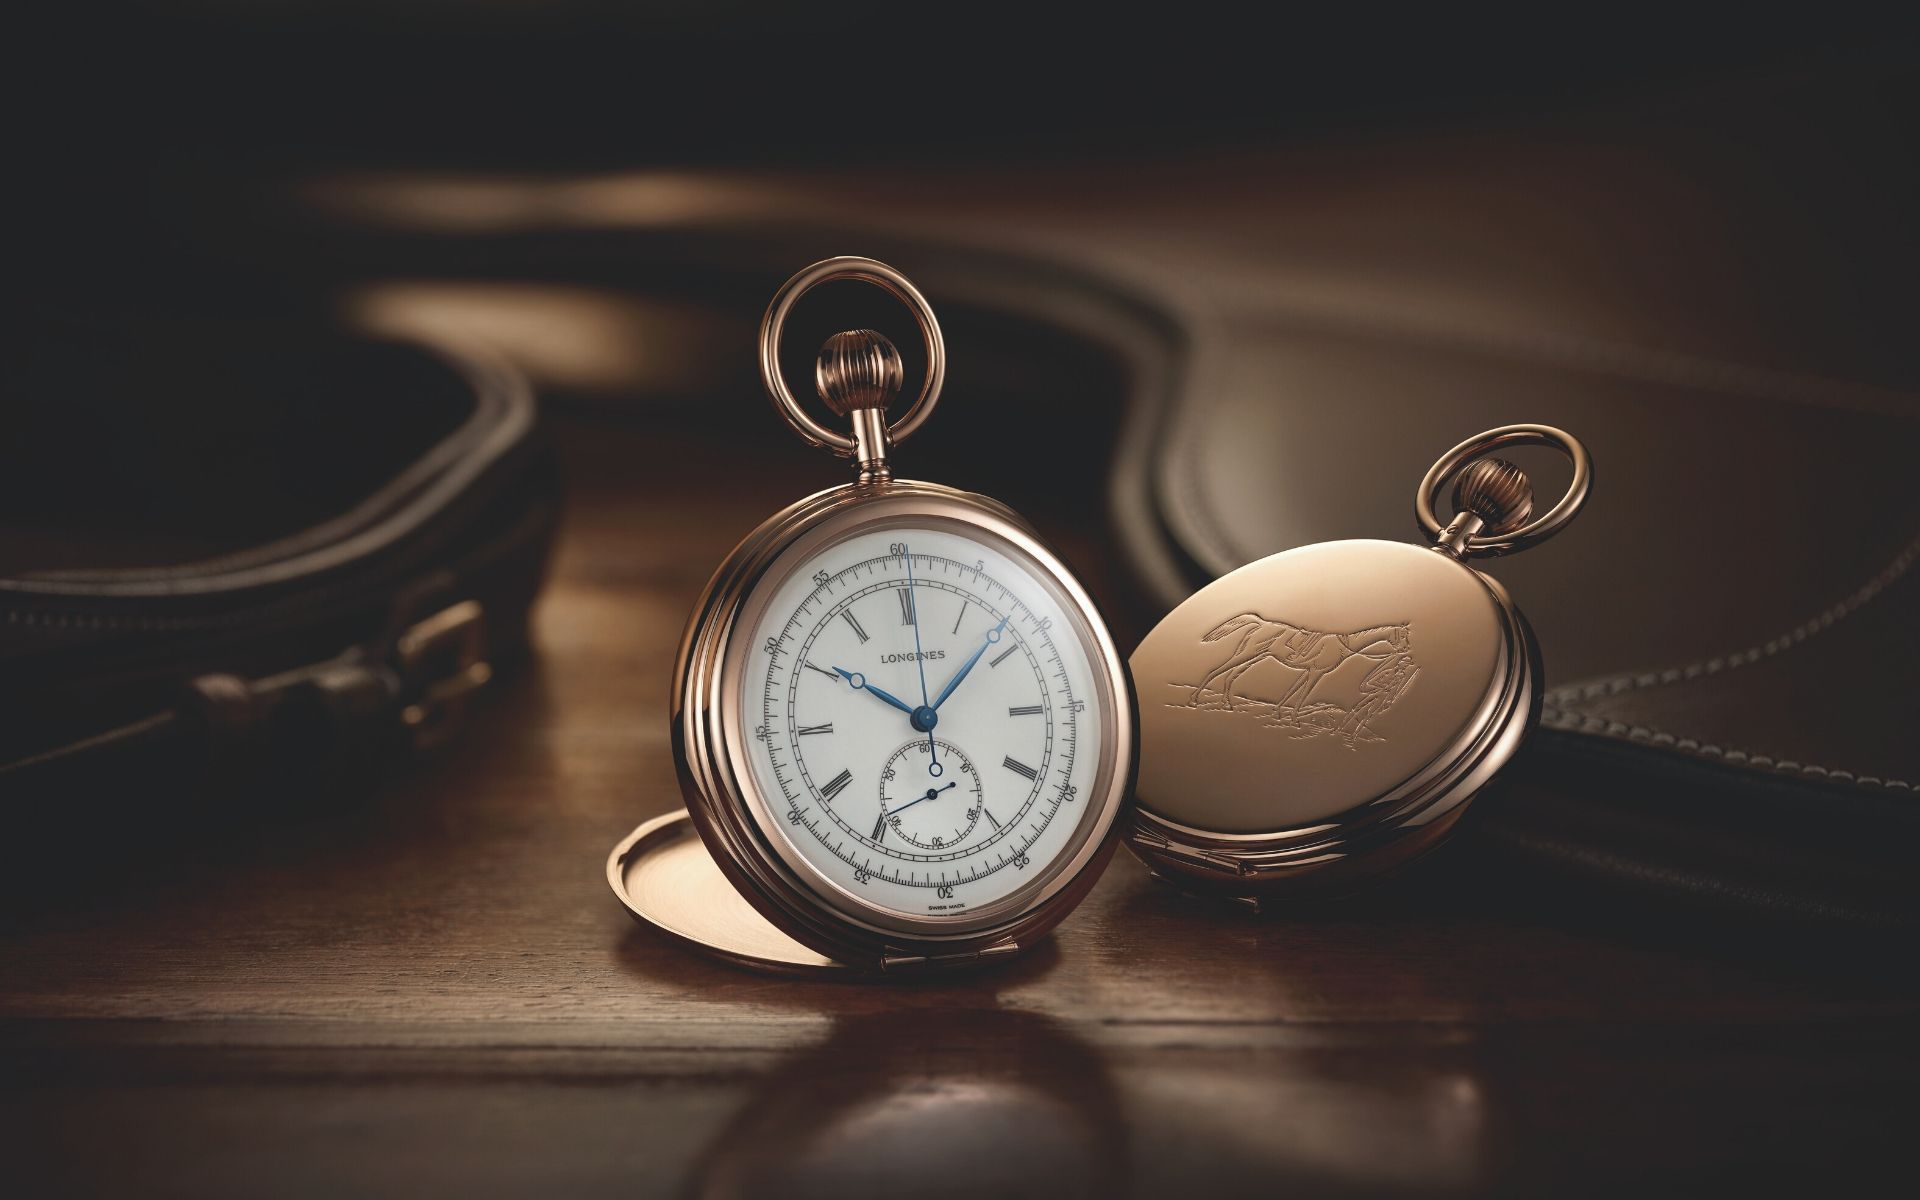 Longines Reinterprets 8 Early Pocket Watches Engraved With Equestrian Motifs